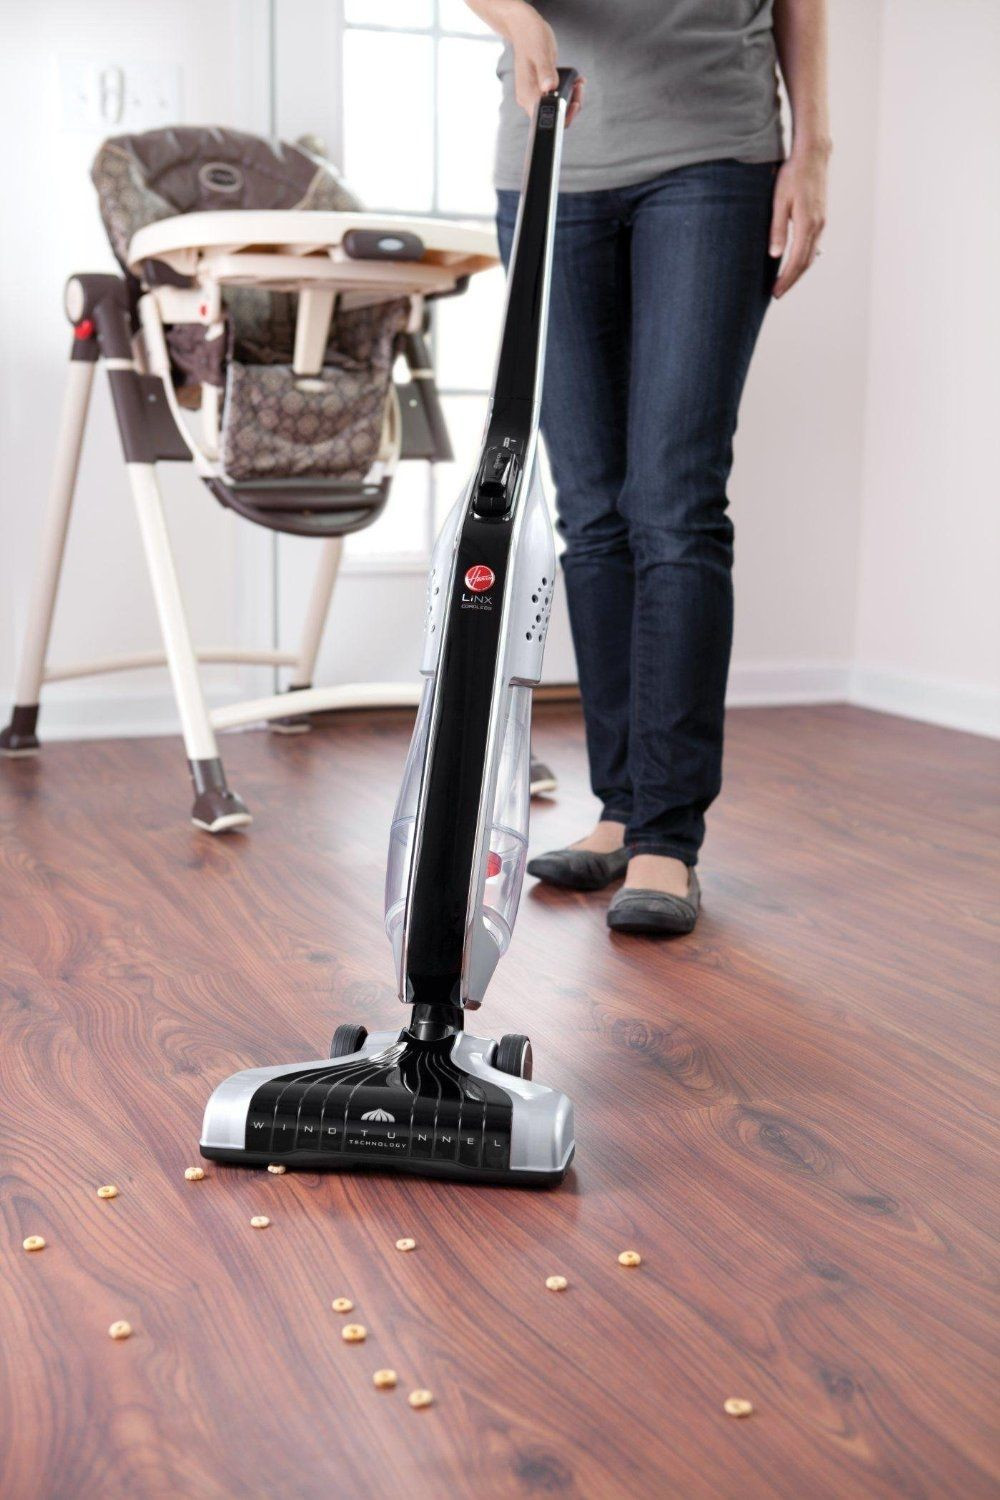 21 Trendy Bona Hardwood Floor Cleaner Calgary 2021 free download bona hardwood floor cleaner calgary of carpet sweeper for wooden floors http dreamhomesbyrob com regarding carpet sweeper for wooden floors